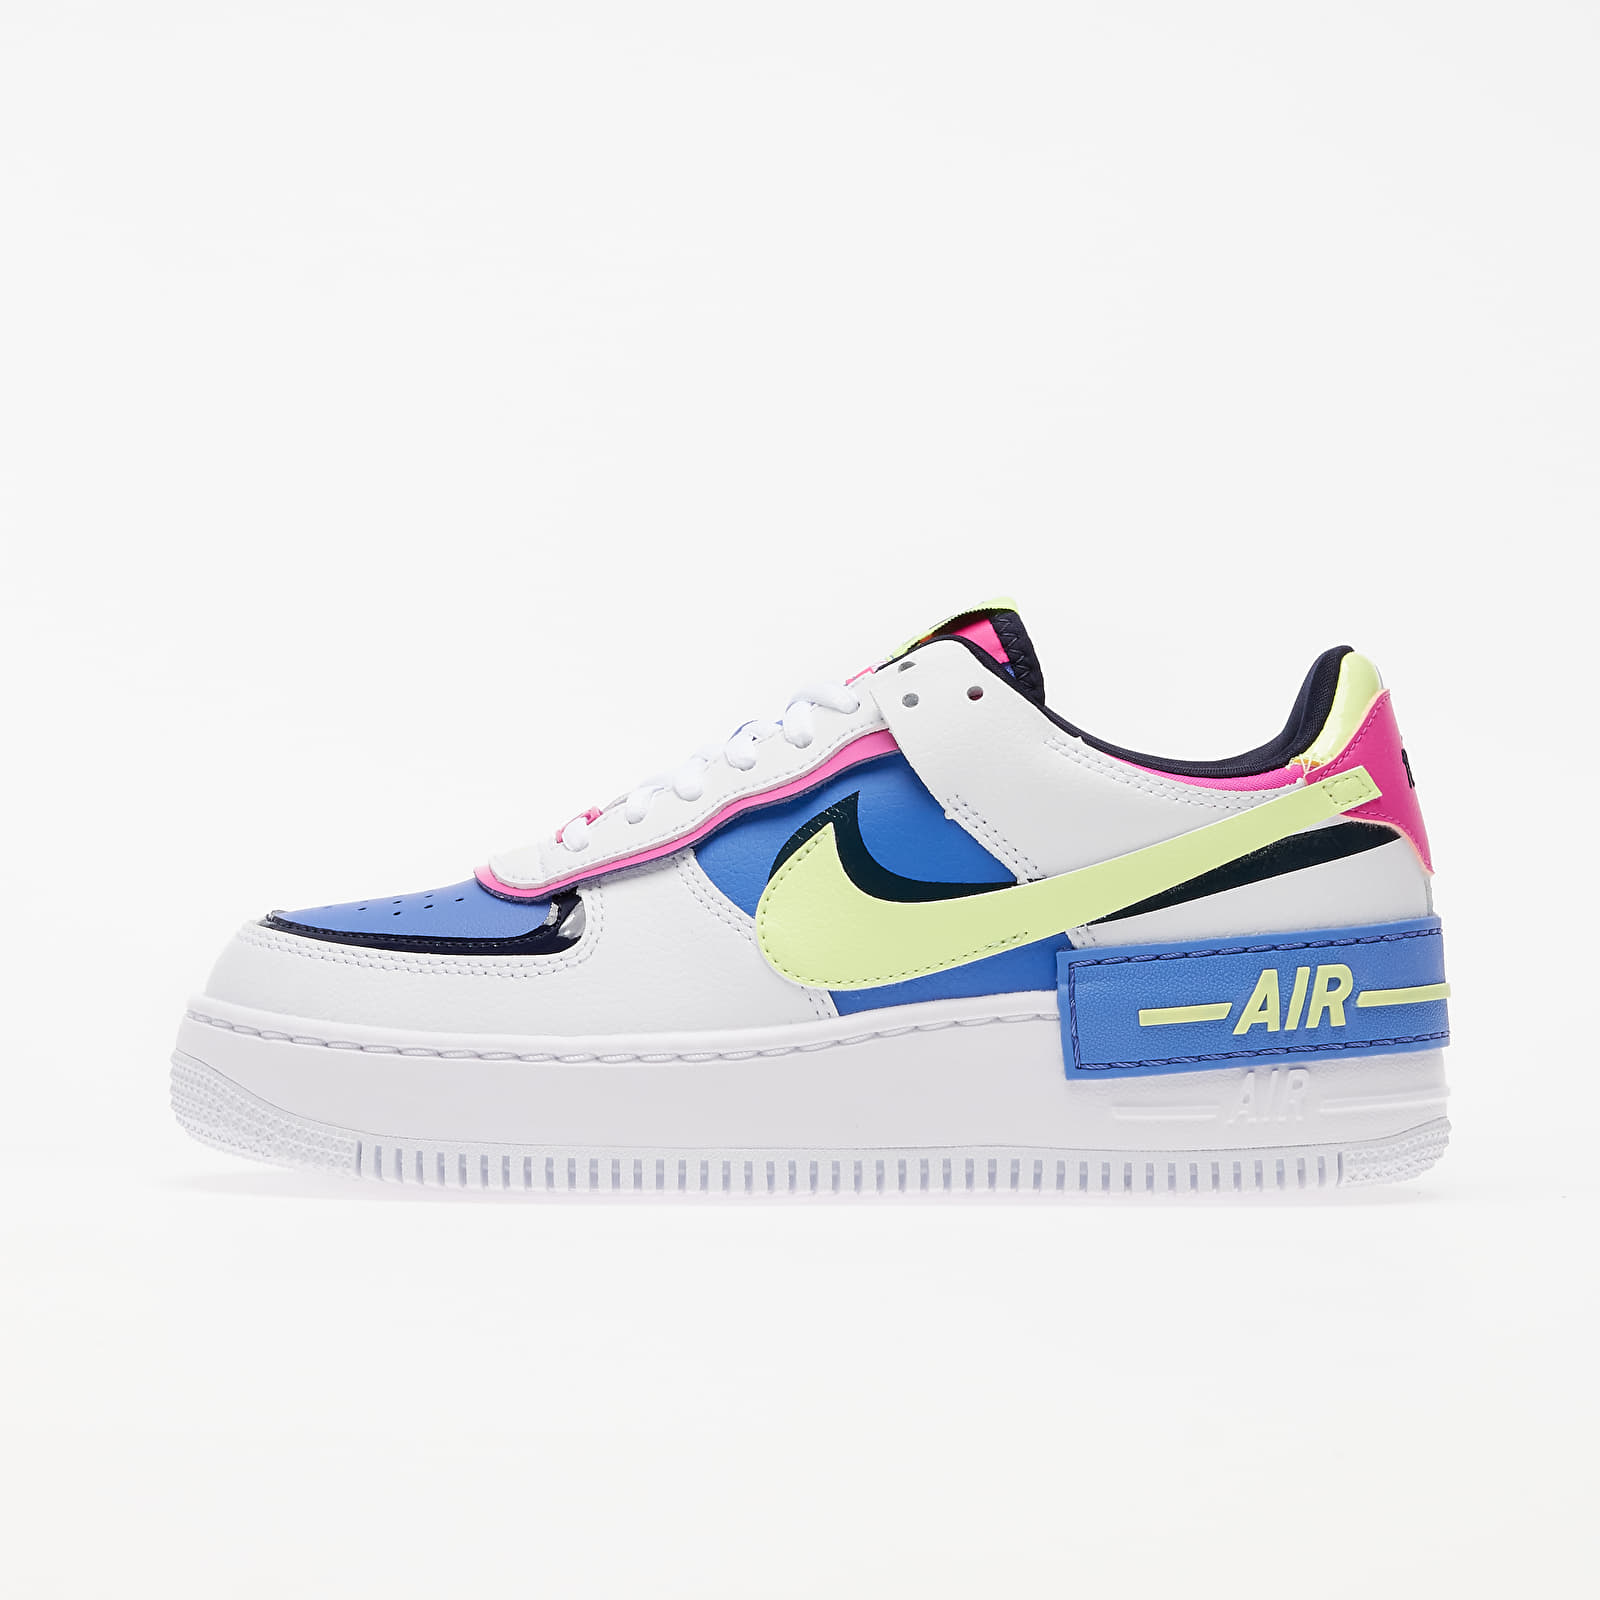 Dámske topánky a tenisky Nike W Air Force 1 Shadow White/ Barely Volt-Sapphire-Fire Pink